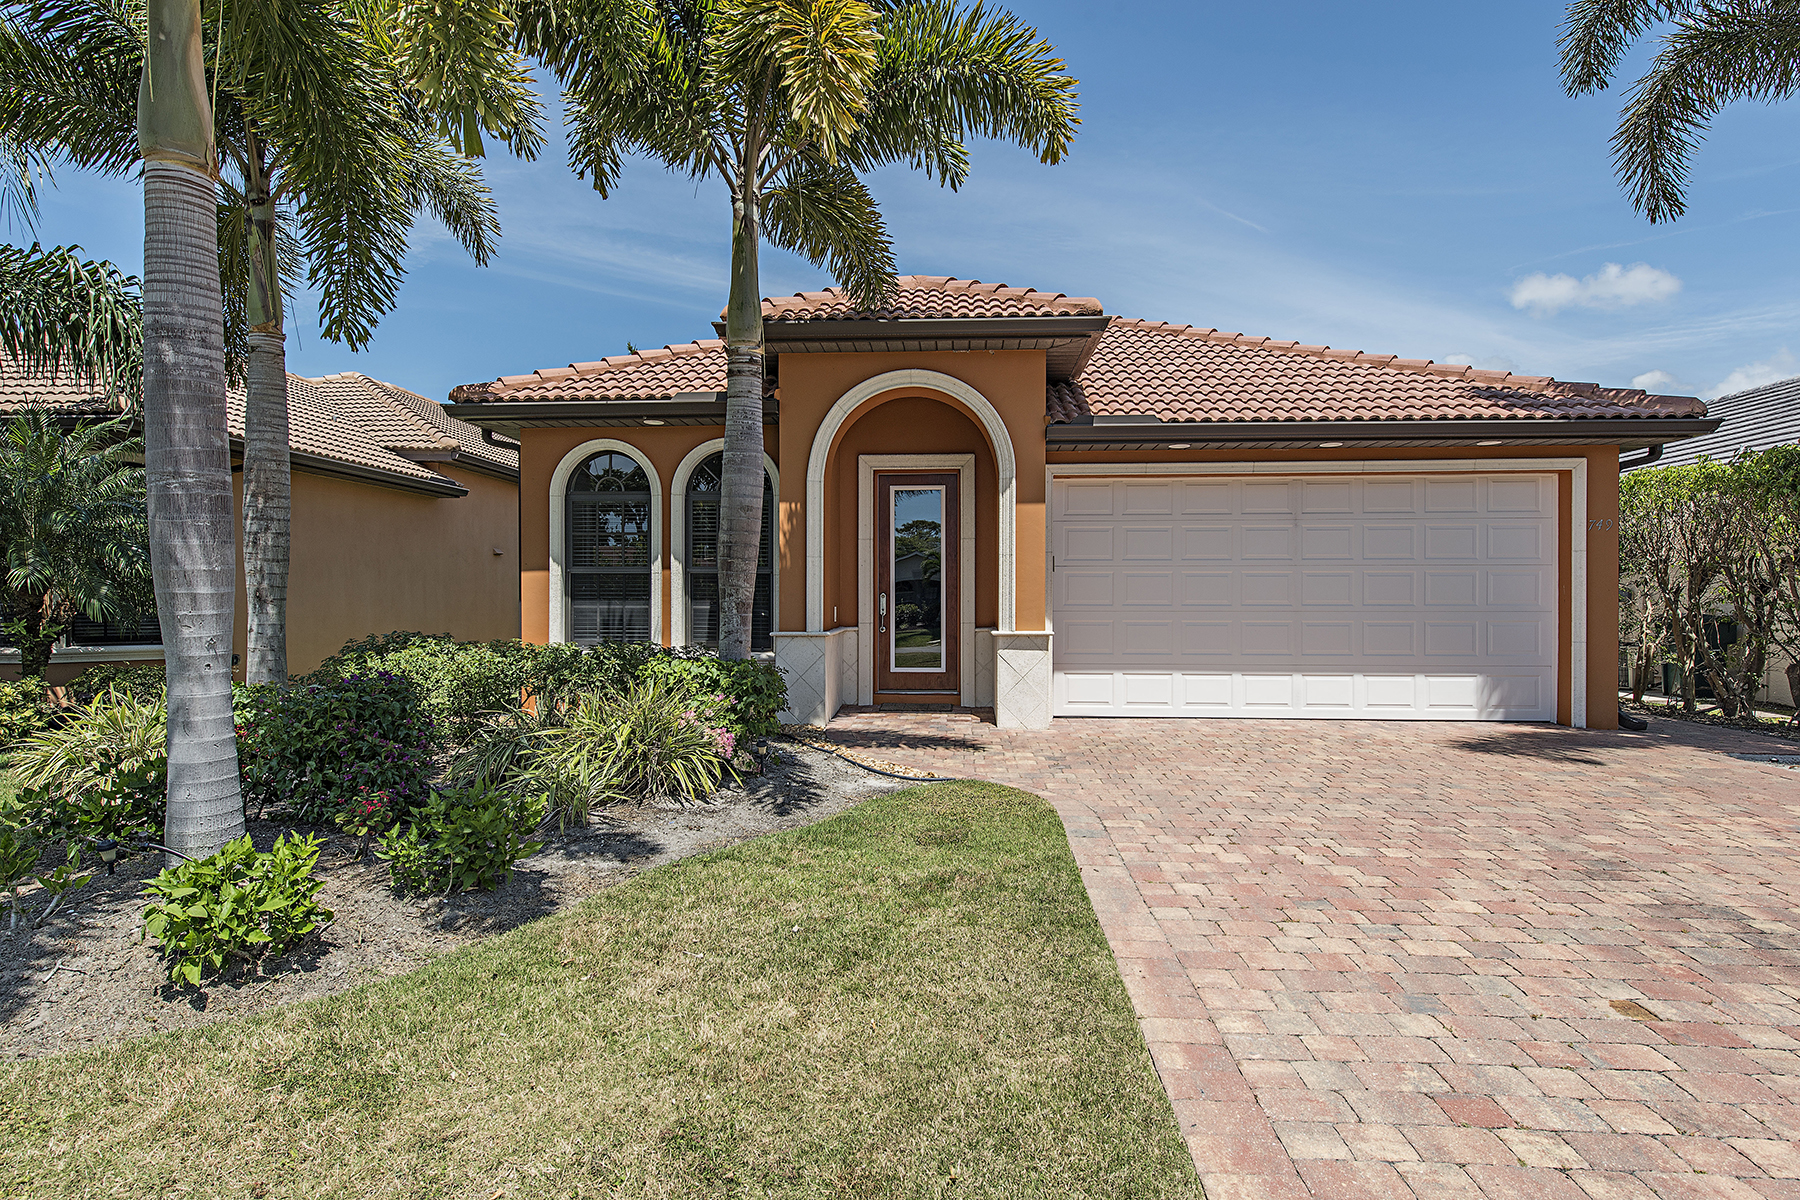 Single Family Home for Sale at NAPLES PARK 749 93rd Ave N Naples, Florida, 34108 United States